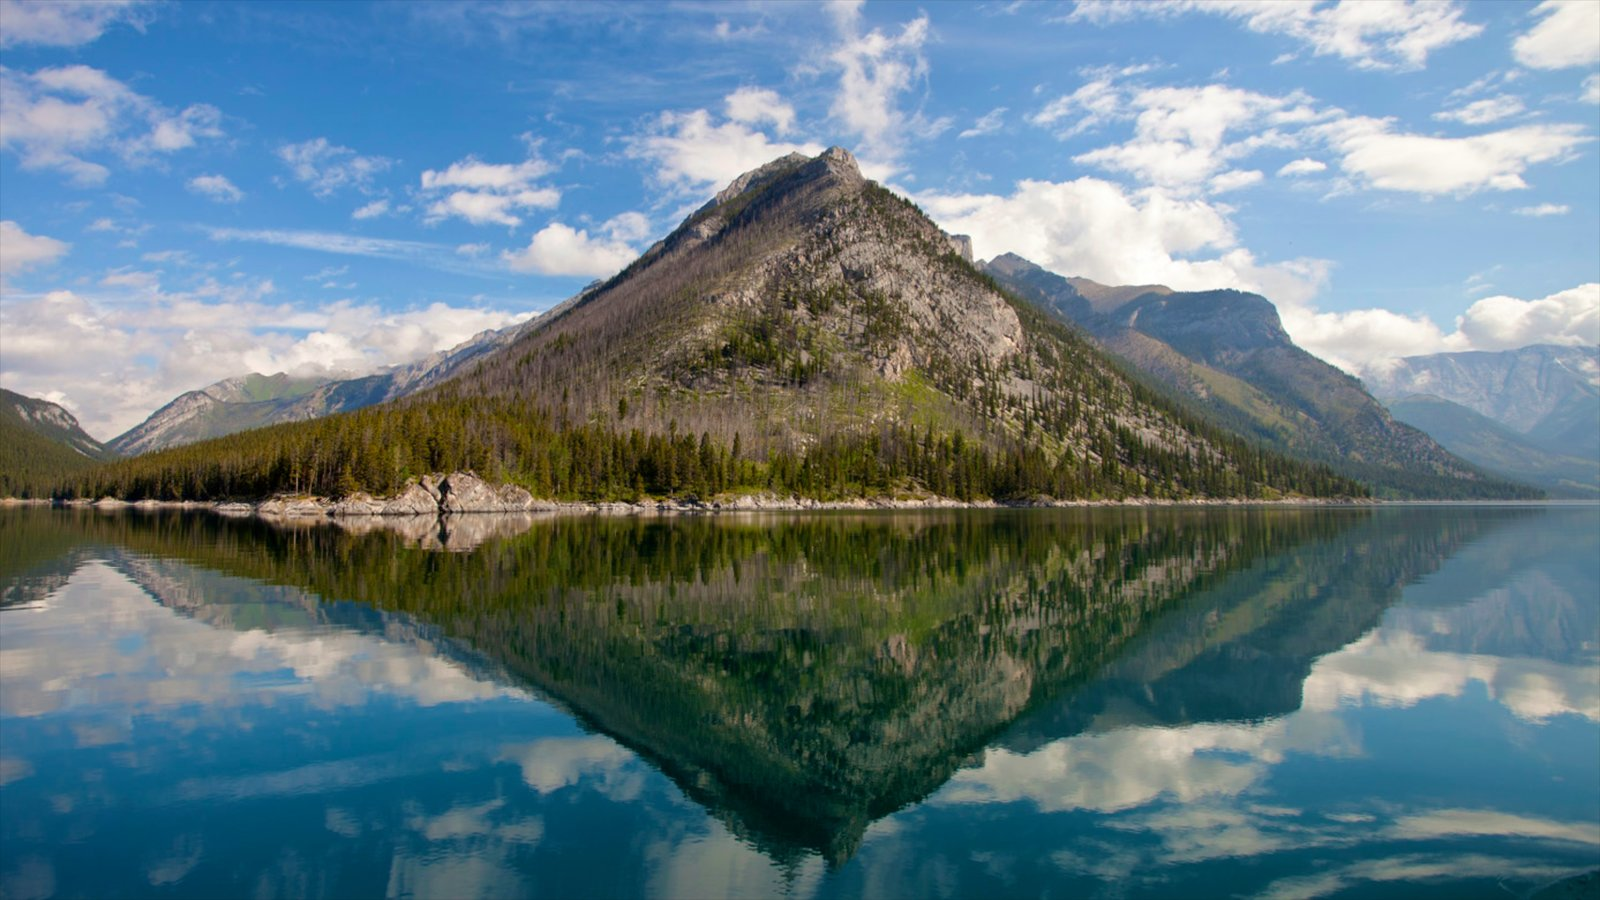 Lake Minnewanka showing landscape views and mountains